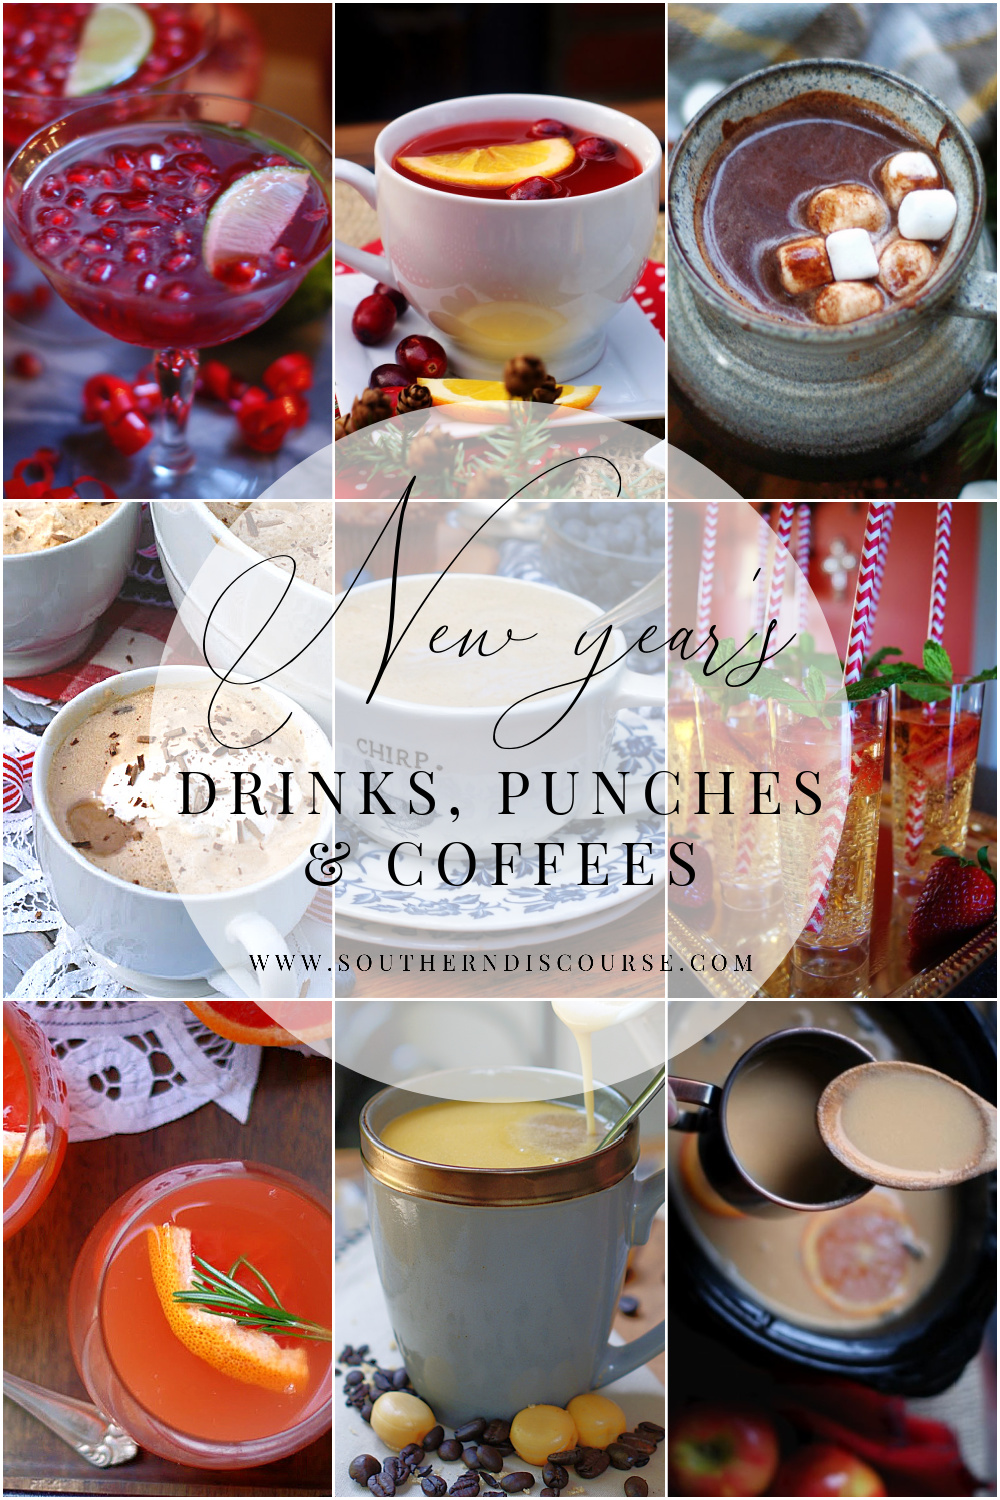 Add a little merry, sparkle and cozy to your New Year's celebration with these 9 special drinks, punches and coffees.  There's a little something for everyone in this non-alcoholic collection, but that doesn't mean you have to skimp on taste, color, or pretty.  These classic drinks have it all in spades!  From toasting on New Year's Eve to New Year's Day brunch and dessert, there's nothing like a fancy sipper to set your party apart.